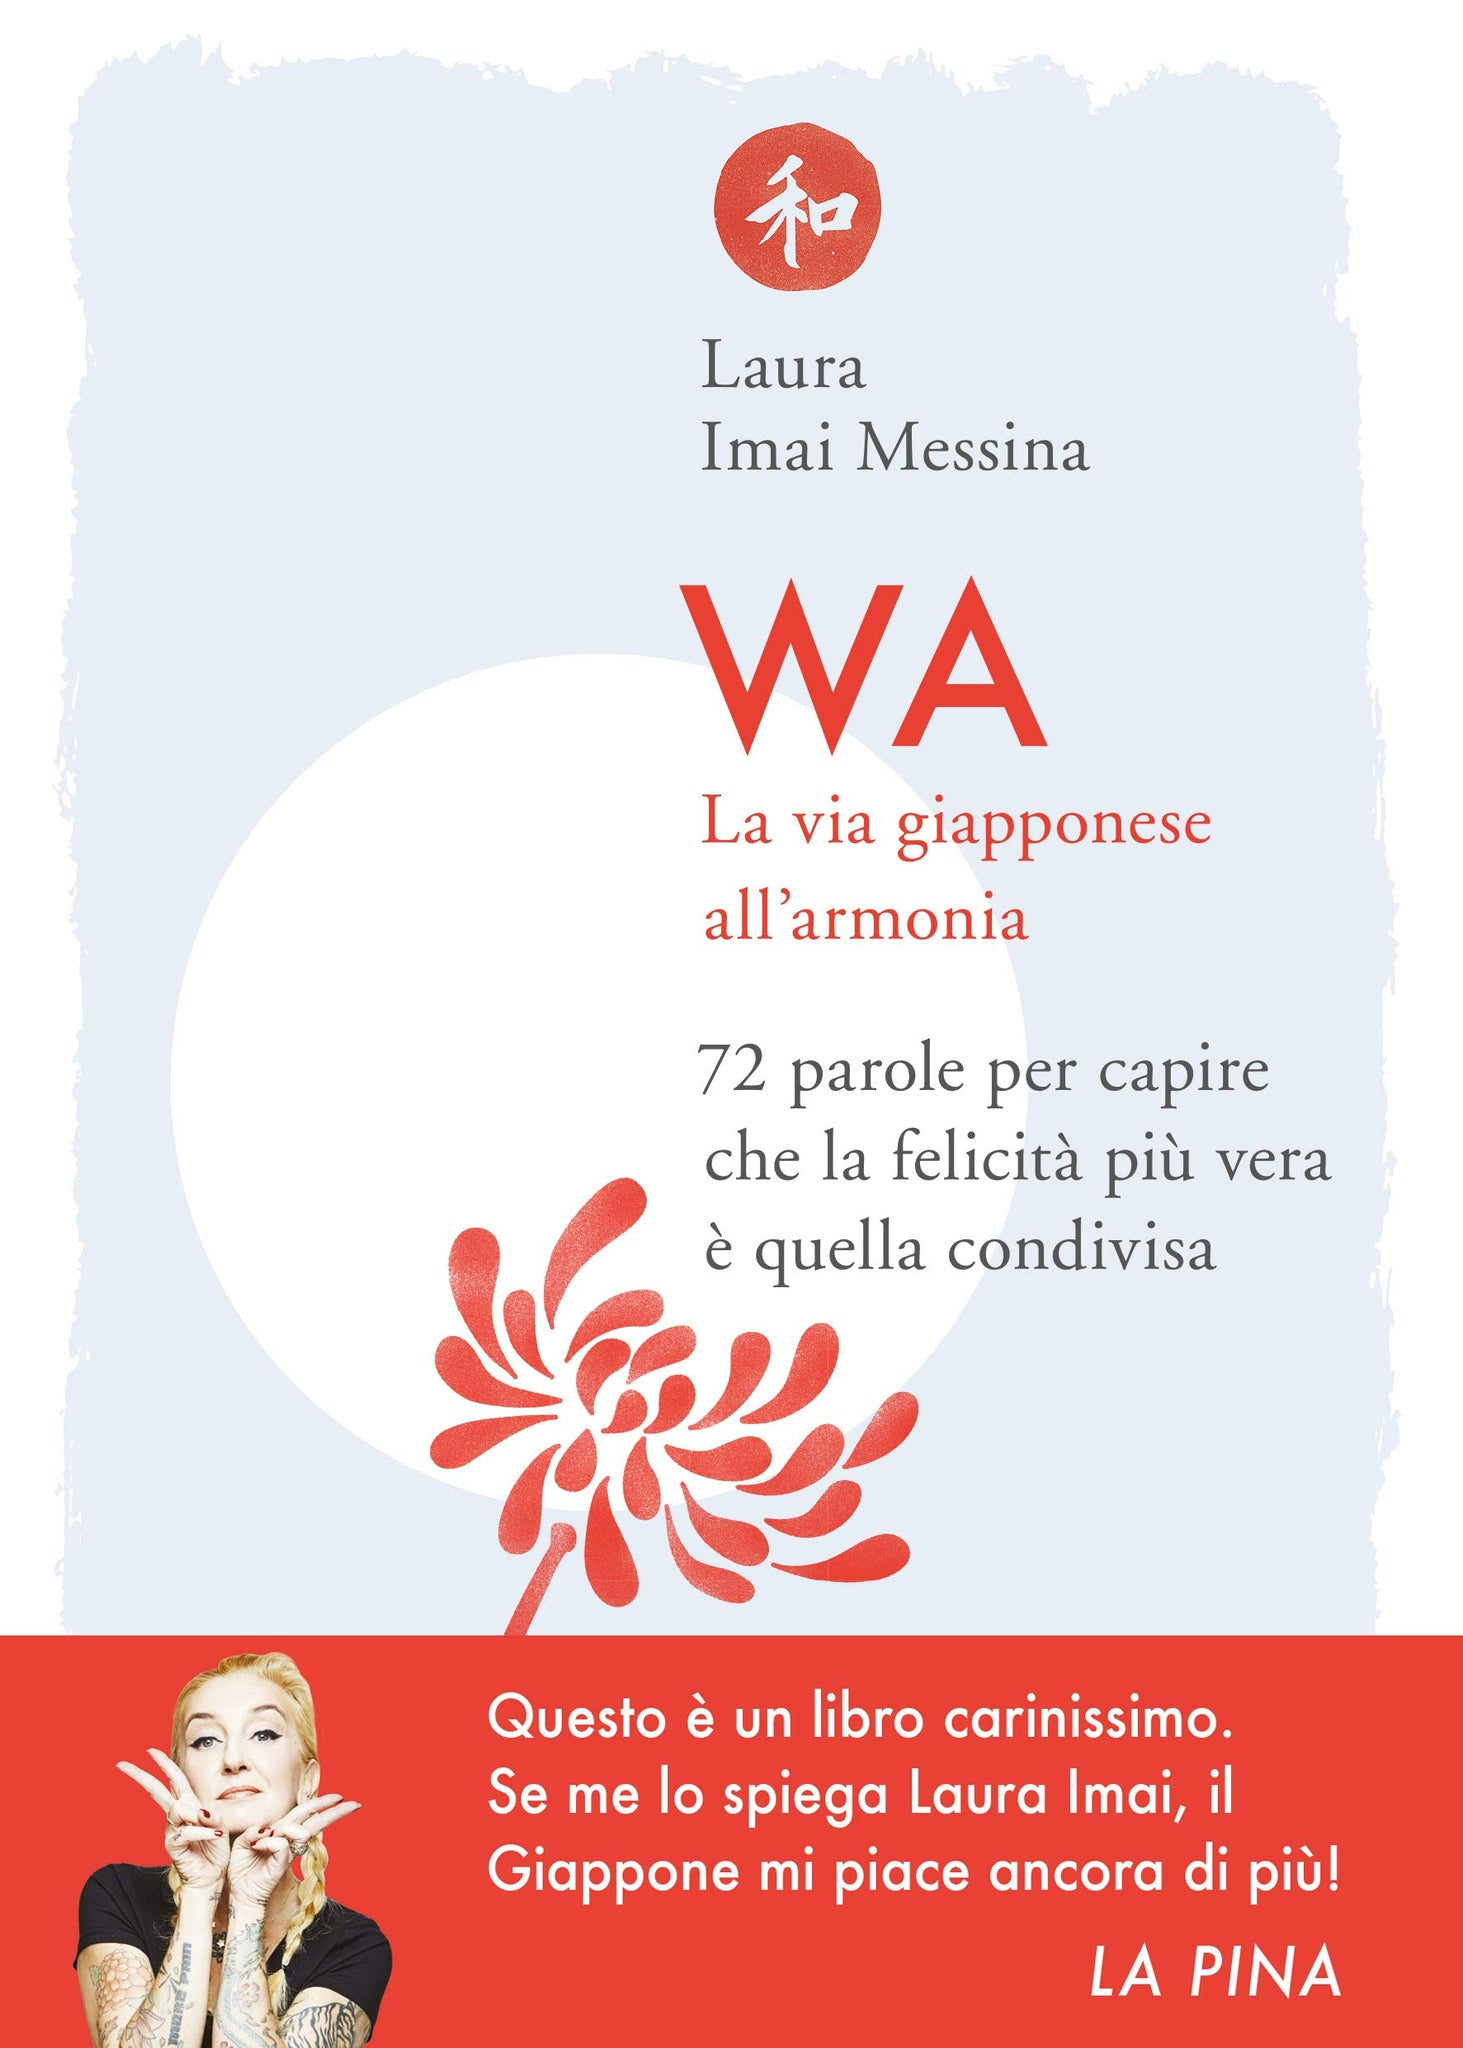 WA - La via giapponese all'armonia